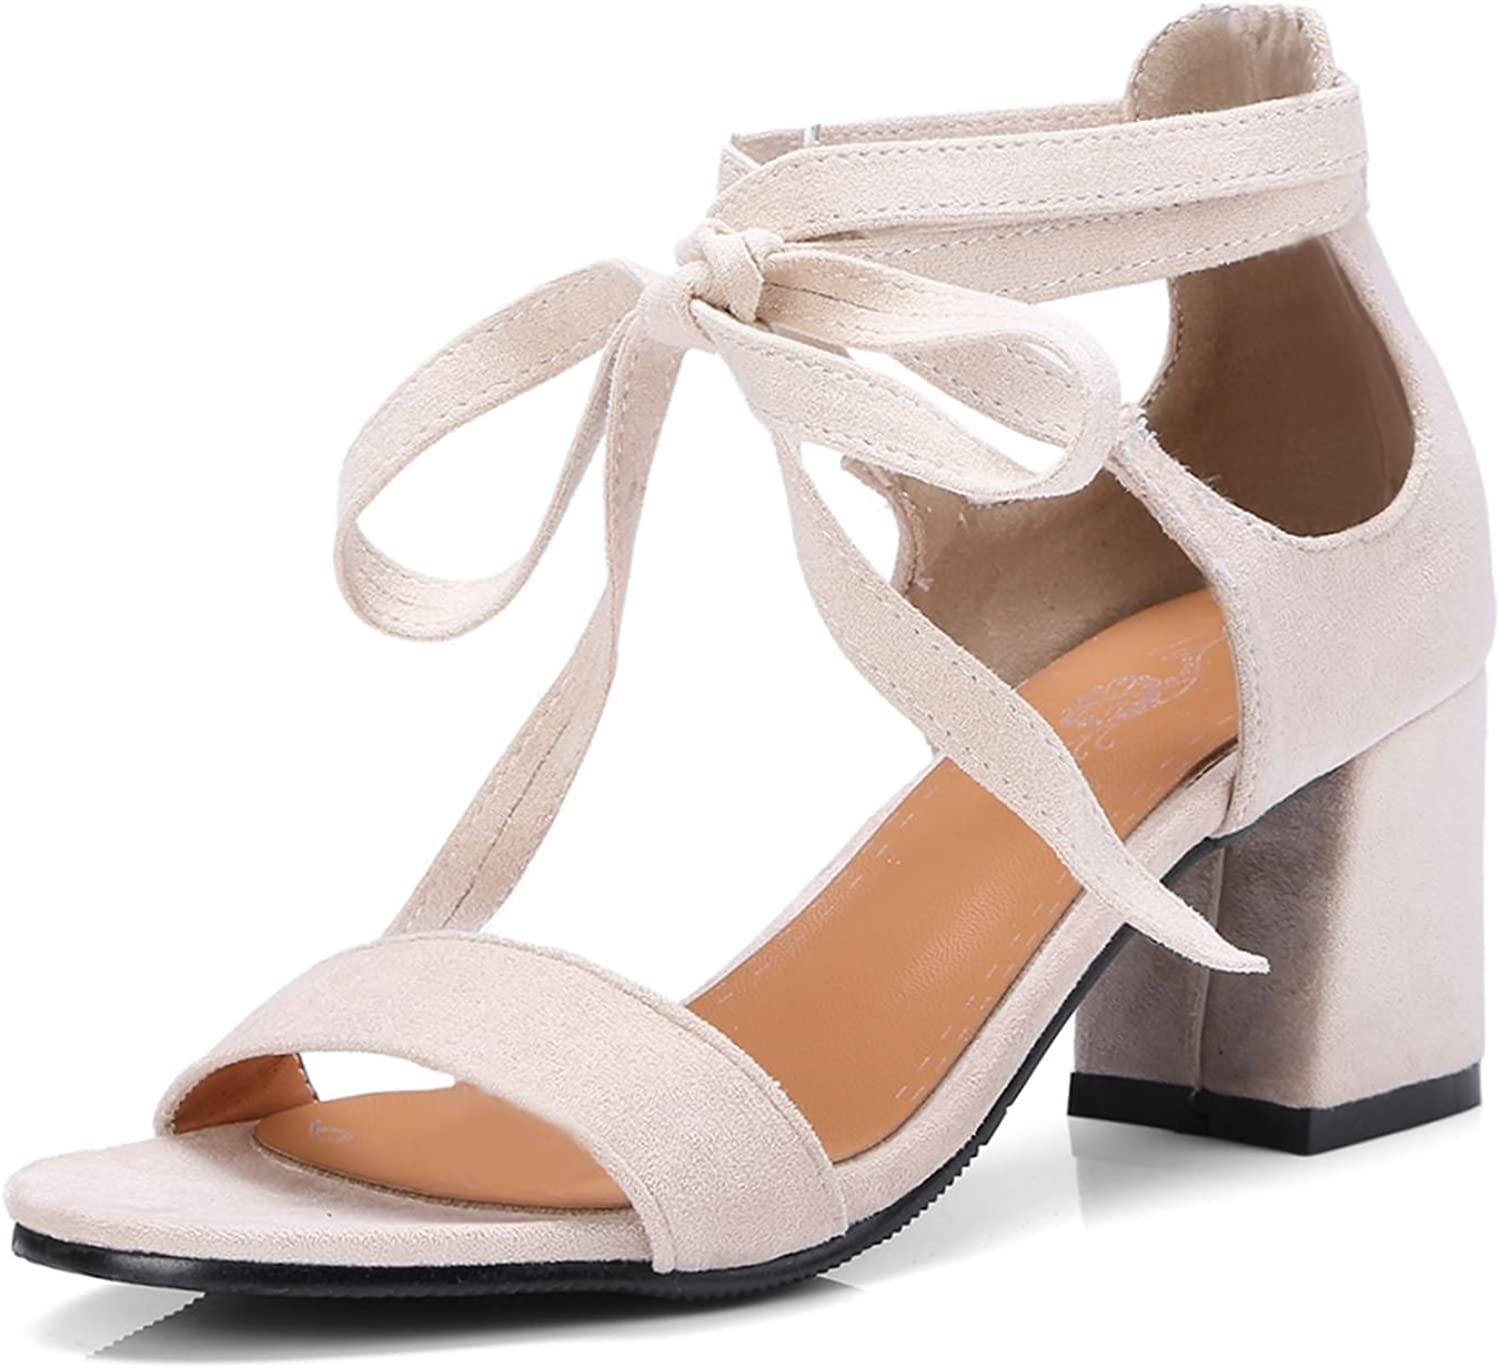 DoraTasia Women's Fashion Sweet Lace up Ankle Wrap Sandals Mid Heel Chunky Sandals Dress shoes